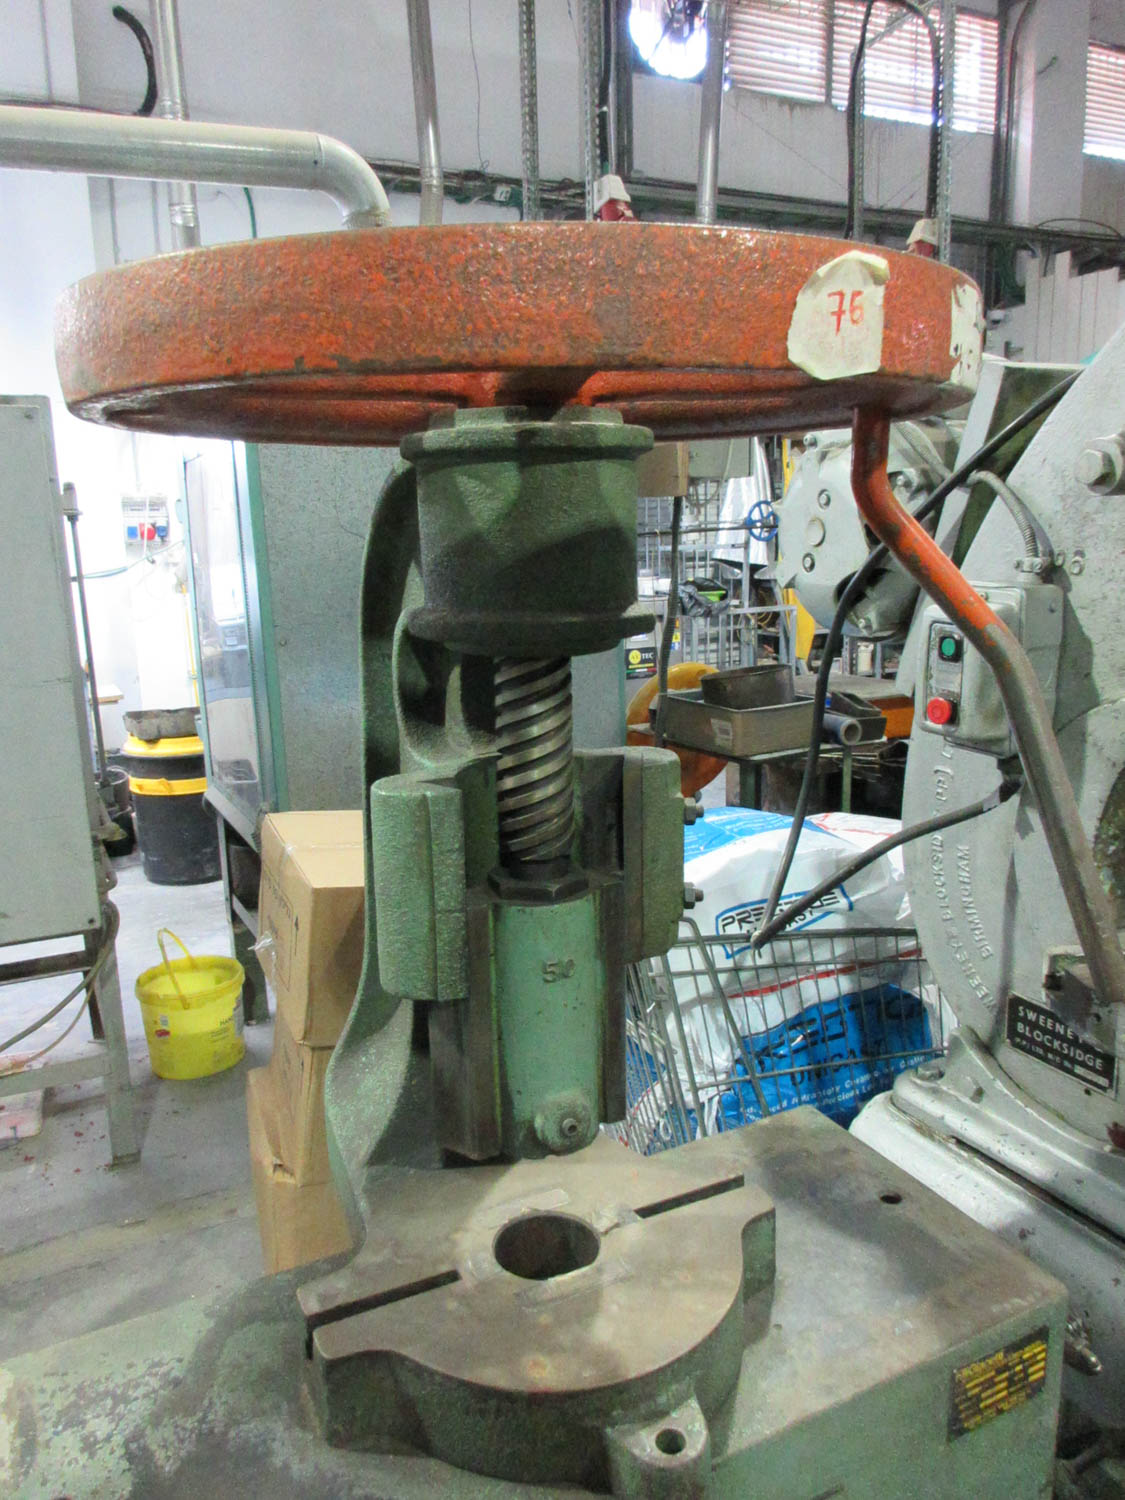 FILLI GIACETTI HAND WHEEL MECHANICAL SCREW PRESS; 50 TONS [A#76][LOCATED IN Kiryat Malachi] - Image 2 of 3